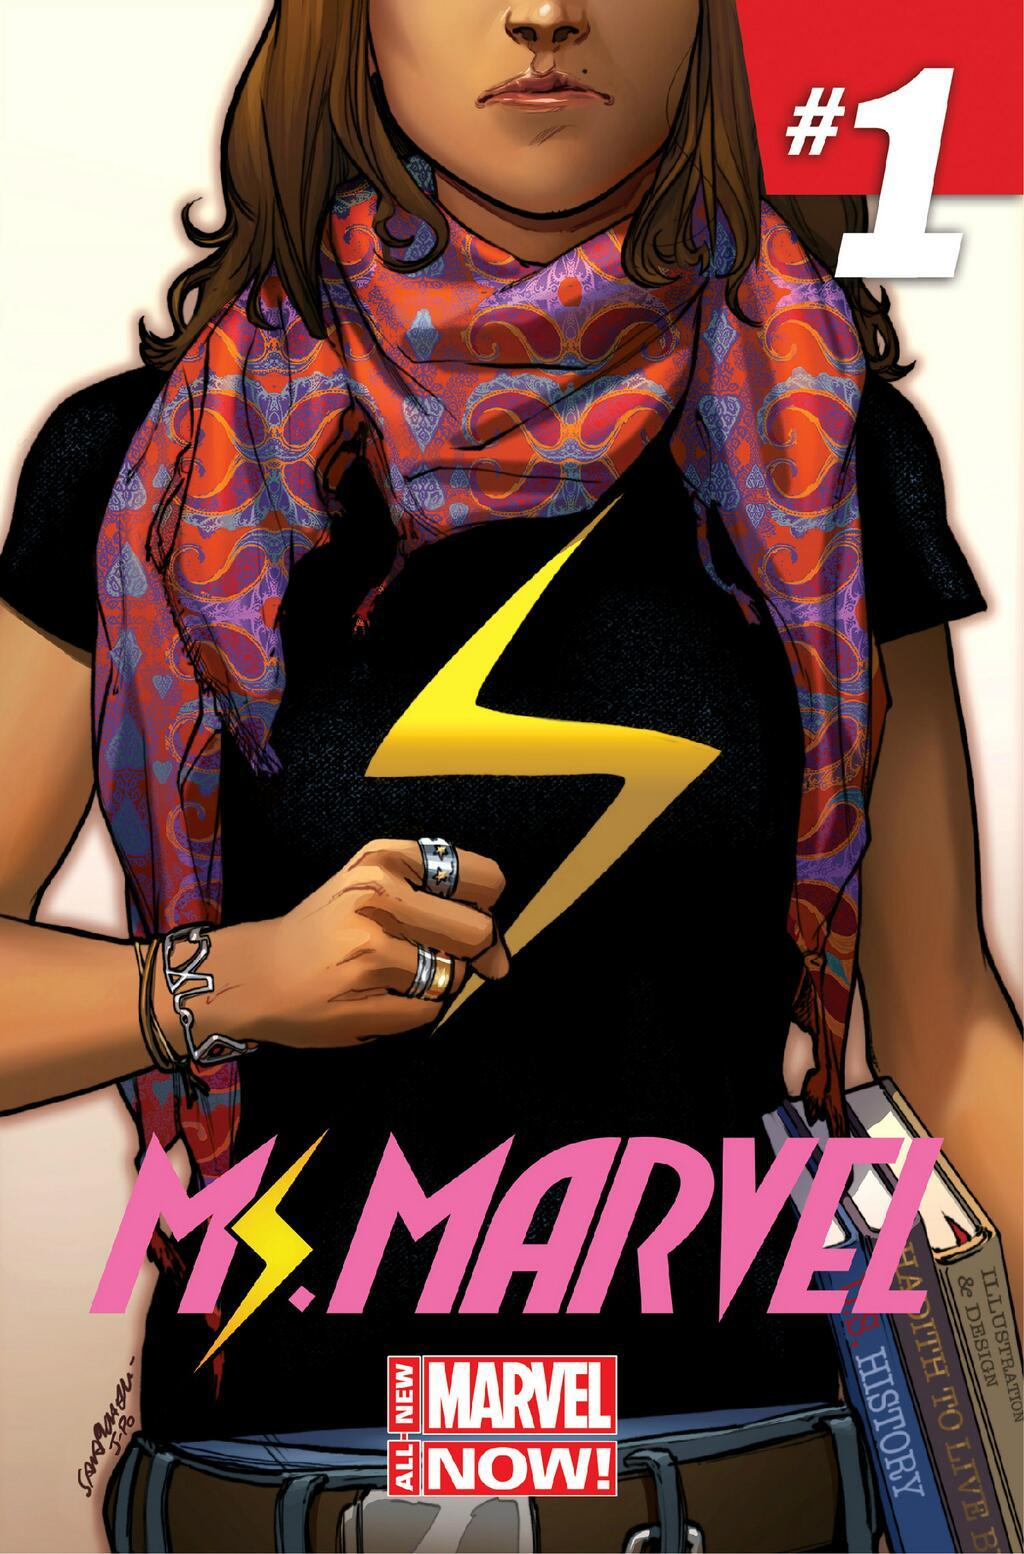 Meet the New Ms. Marvel